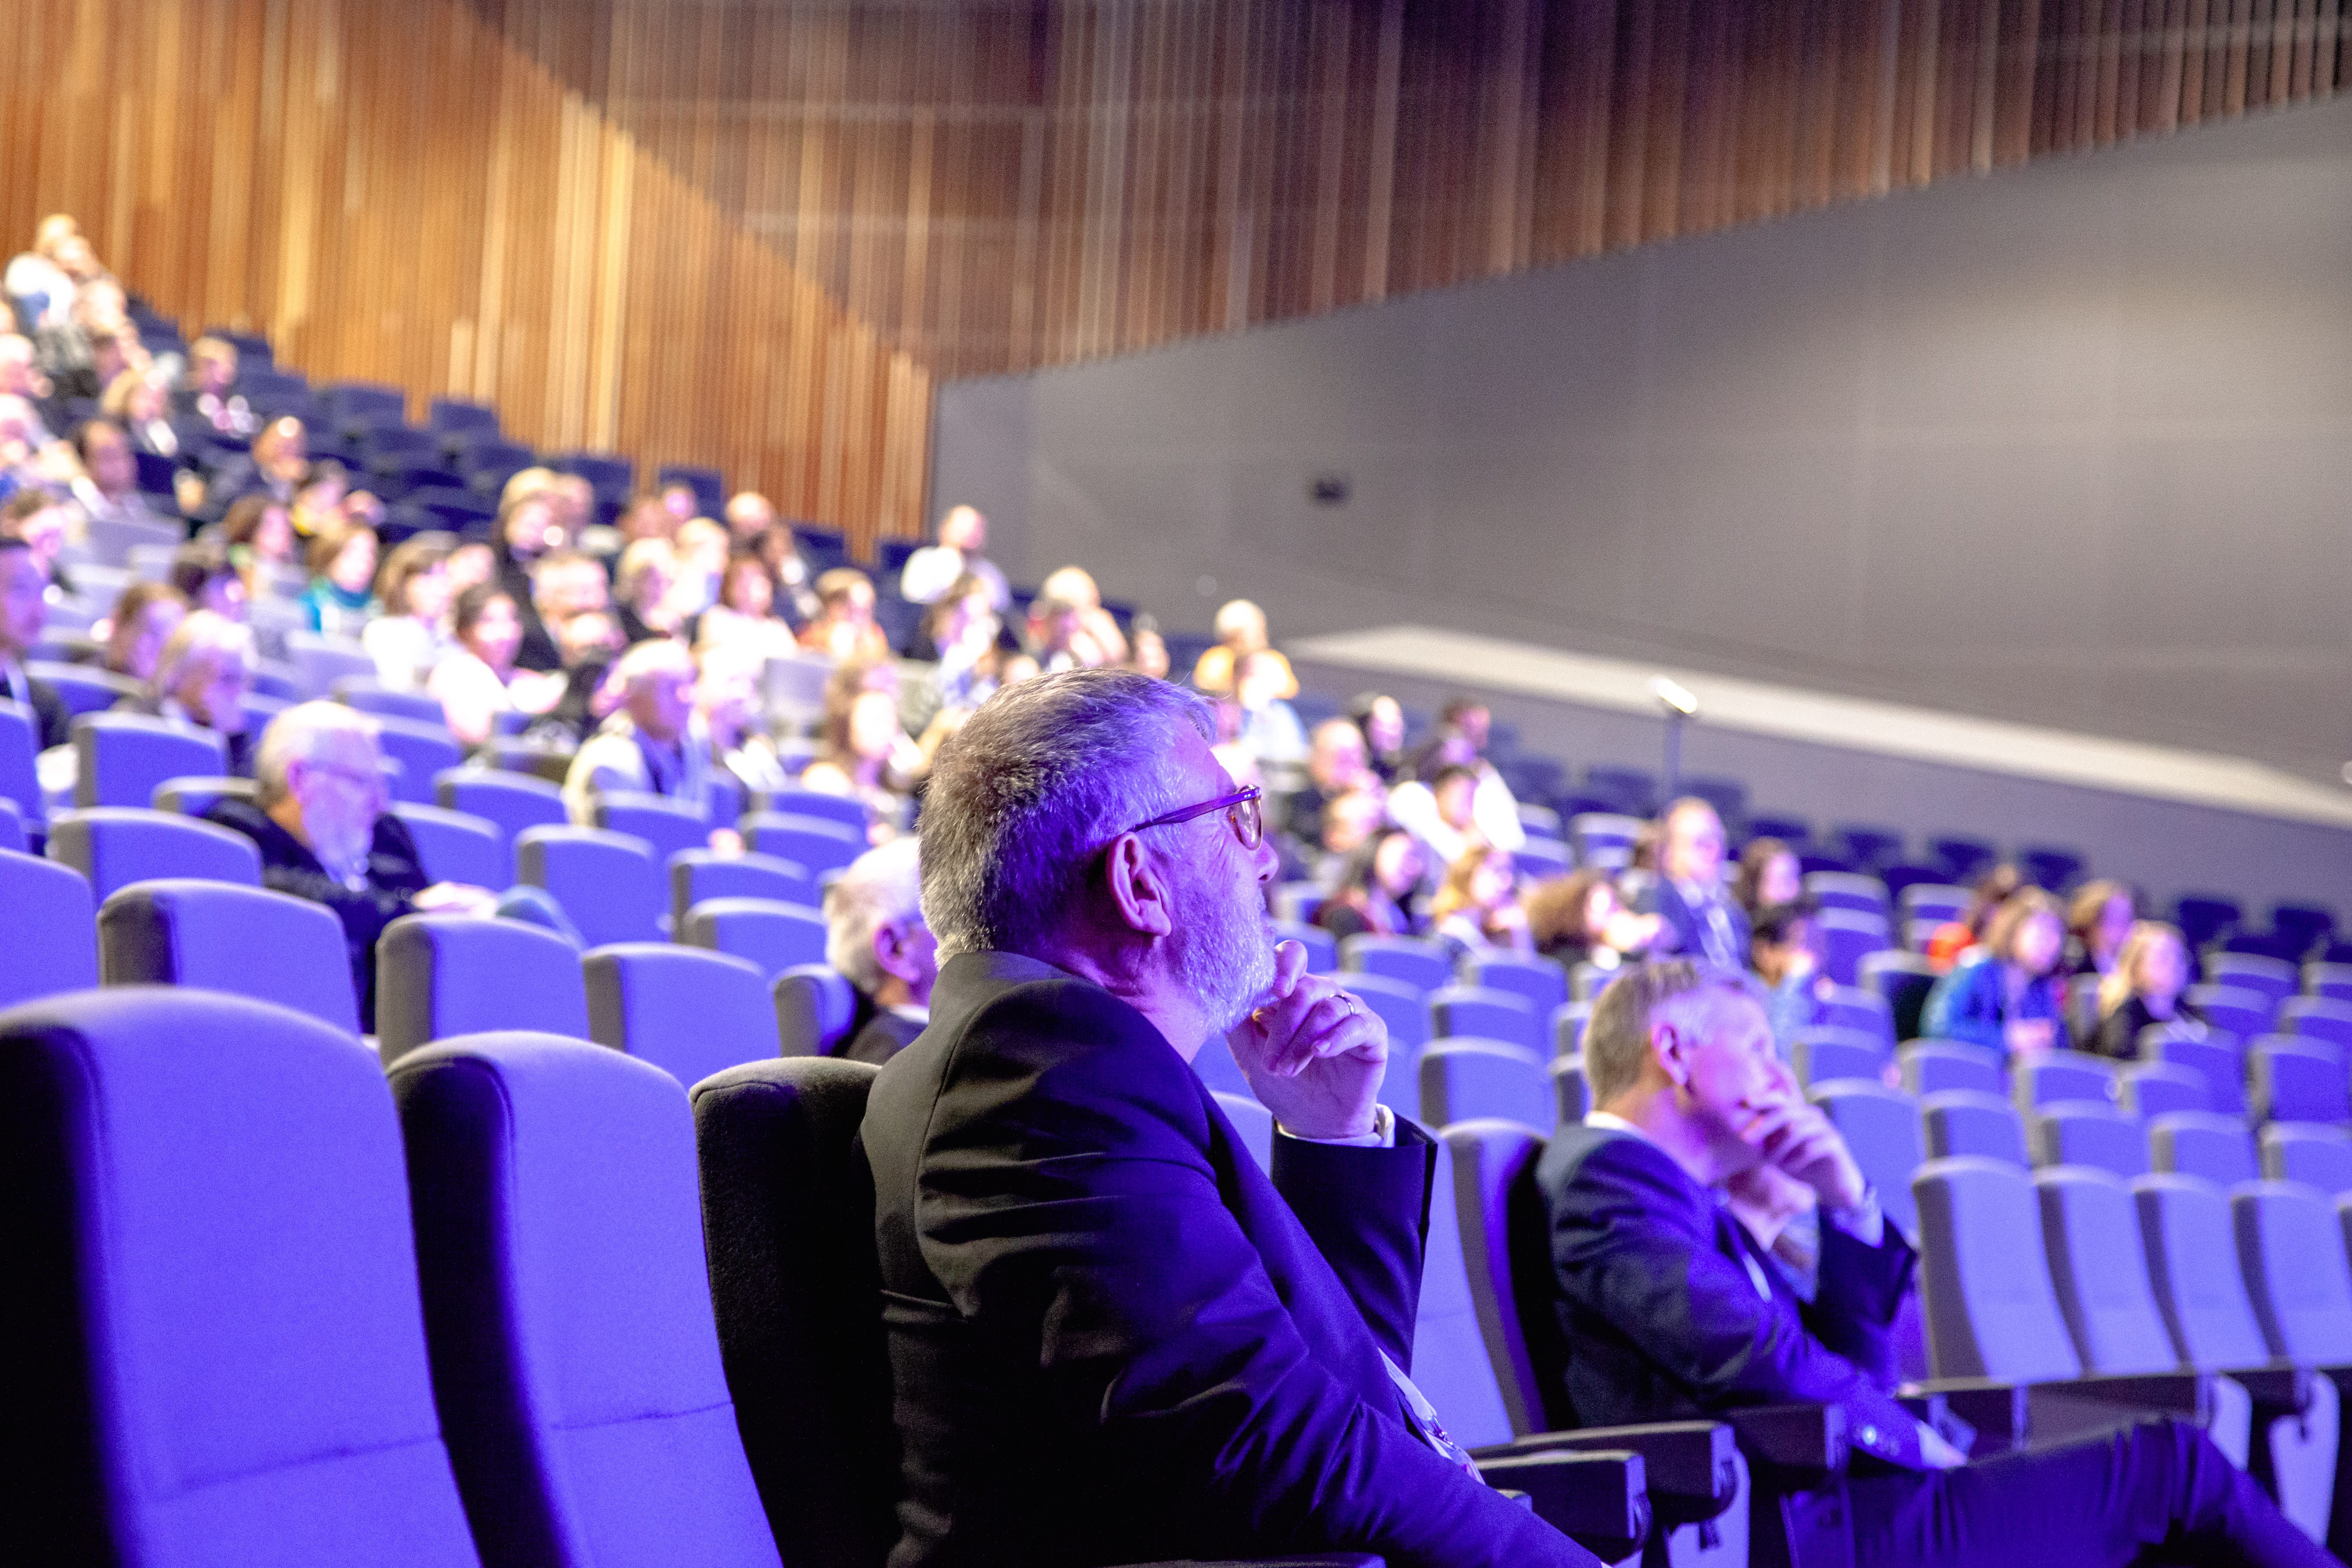 Attendees in the Pyrmont Theatre ICC